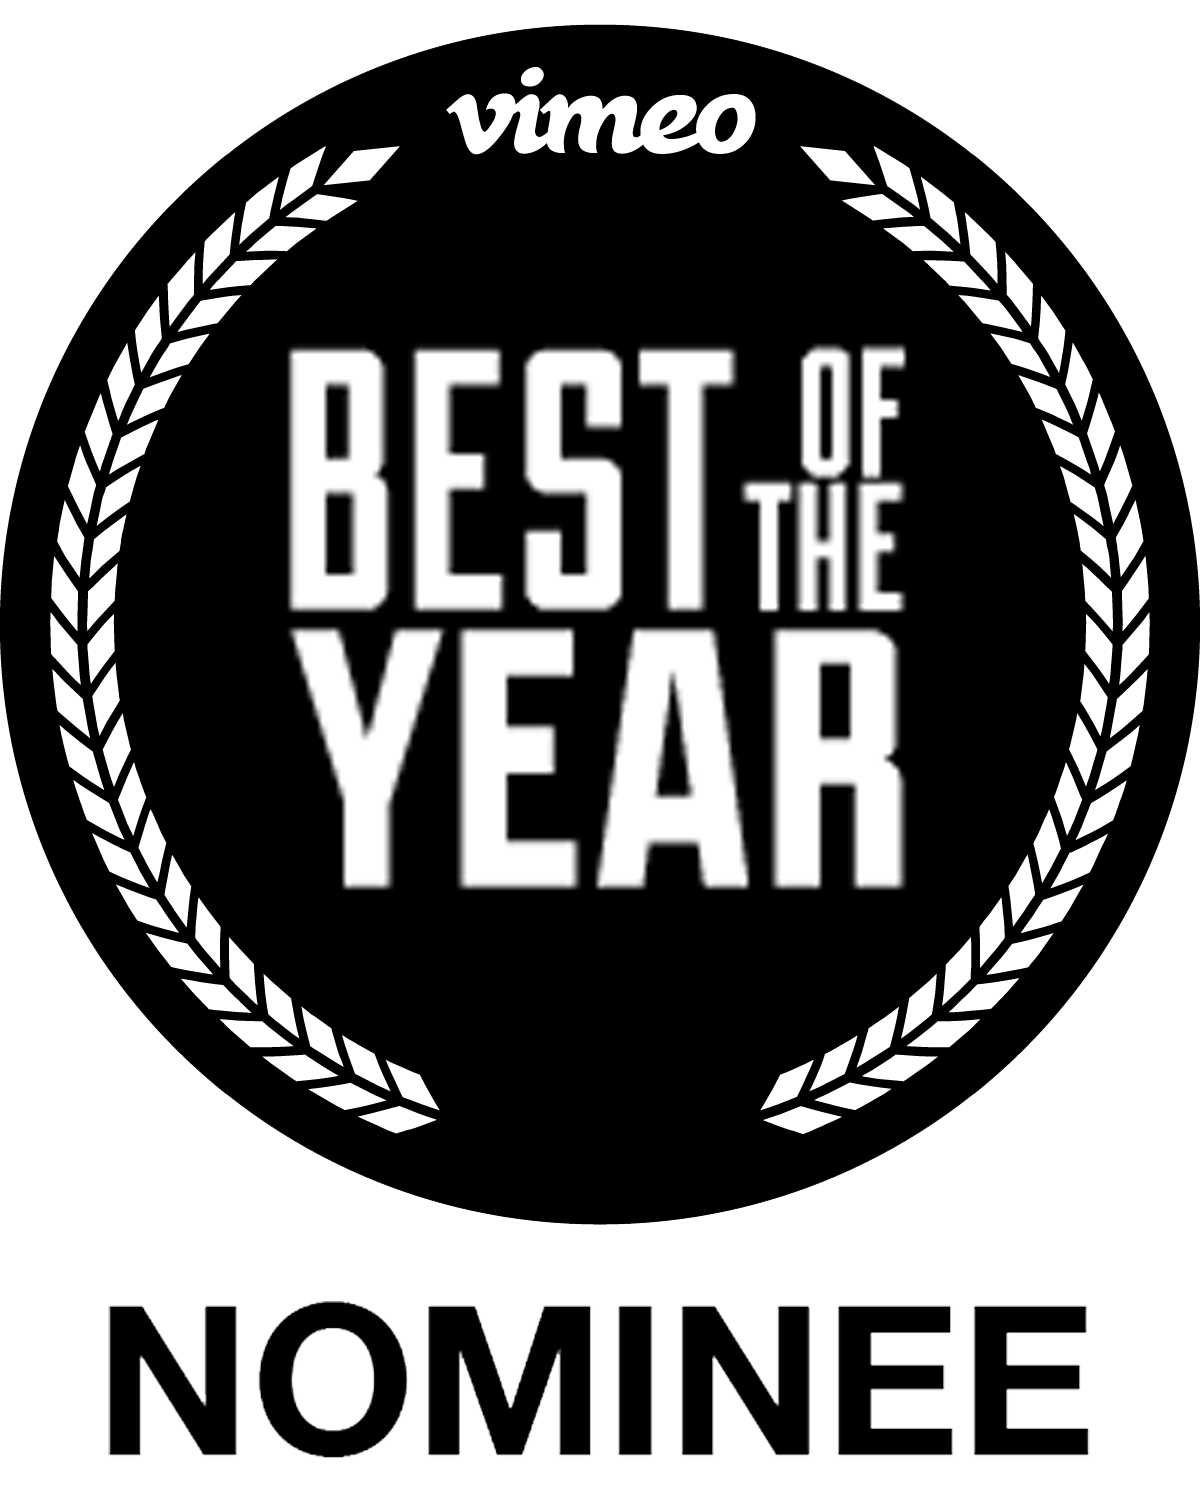 Best of the year - Nominee - Vimeo